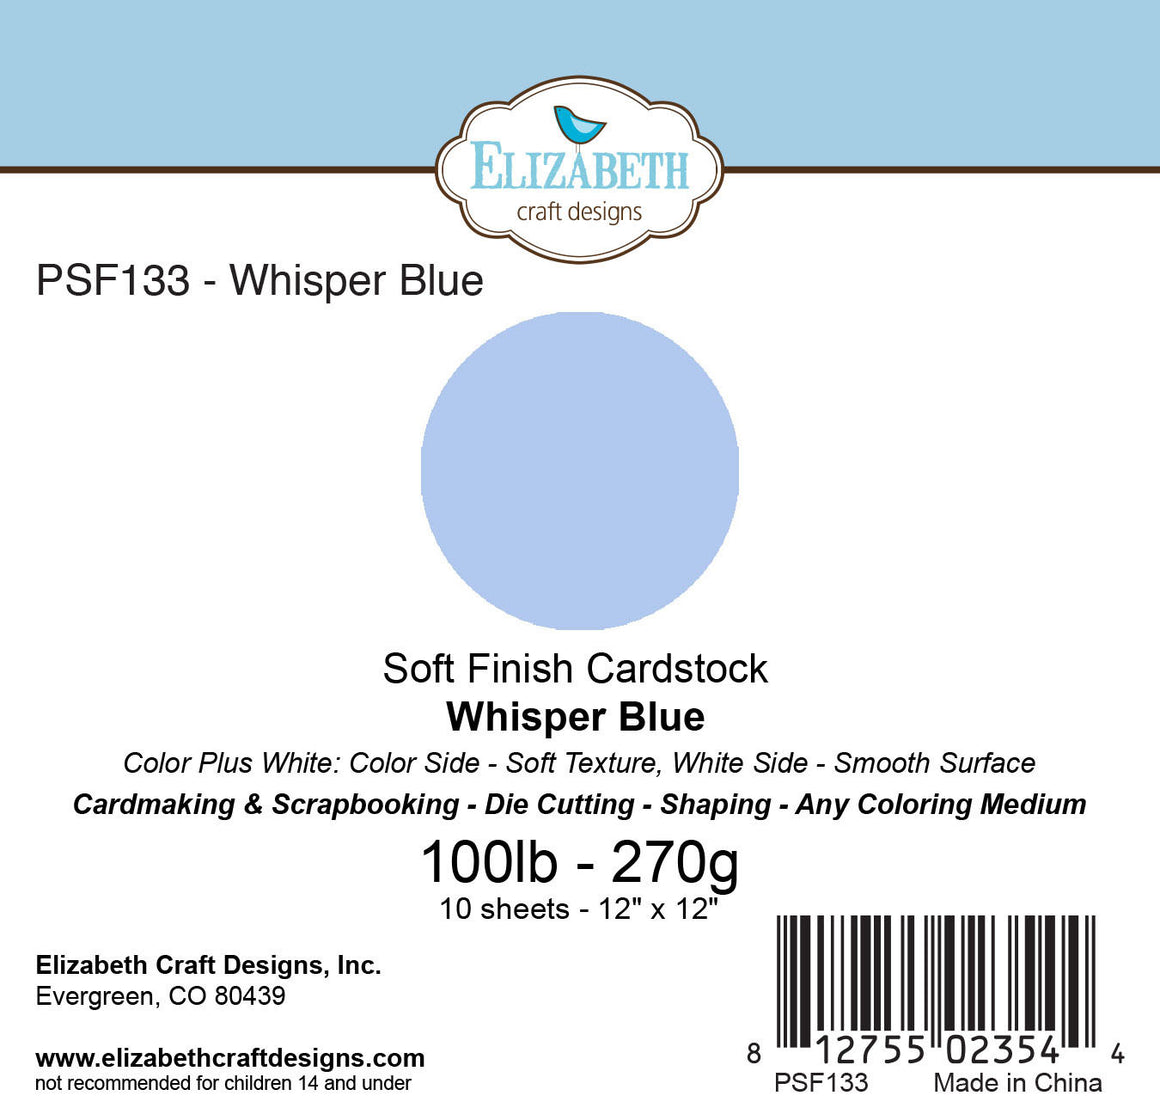 Soft Finish Cardstock, Whisper Blue - Cardstock - ElizabethCraftDesigns.com